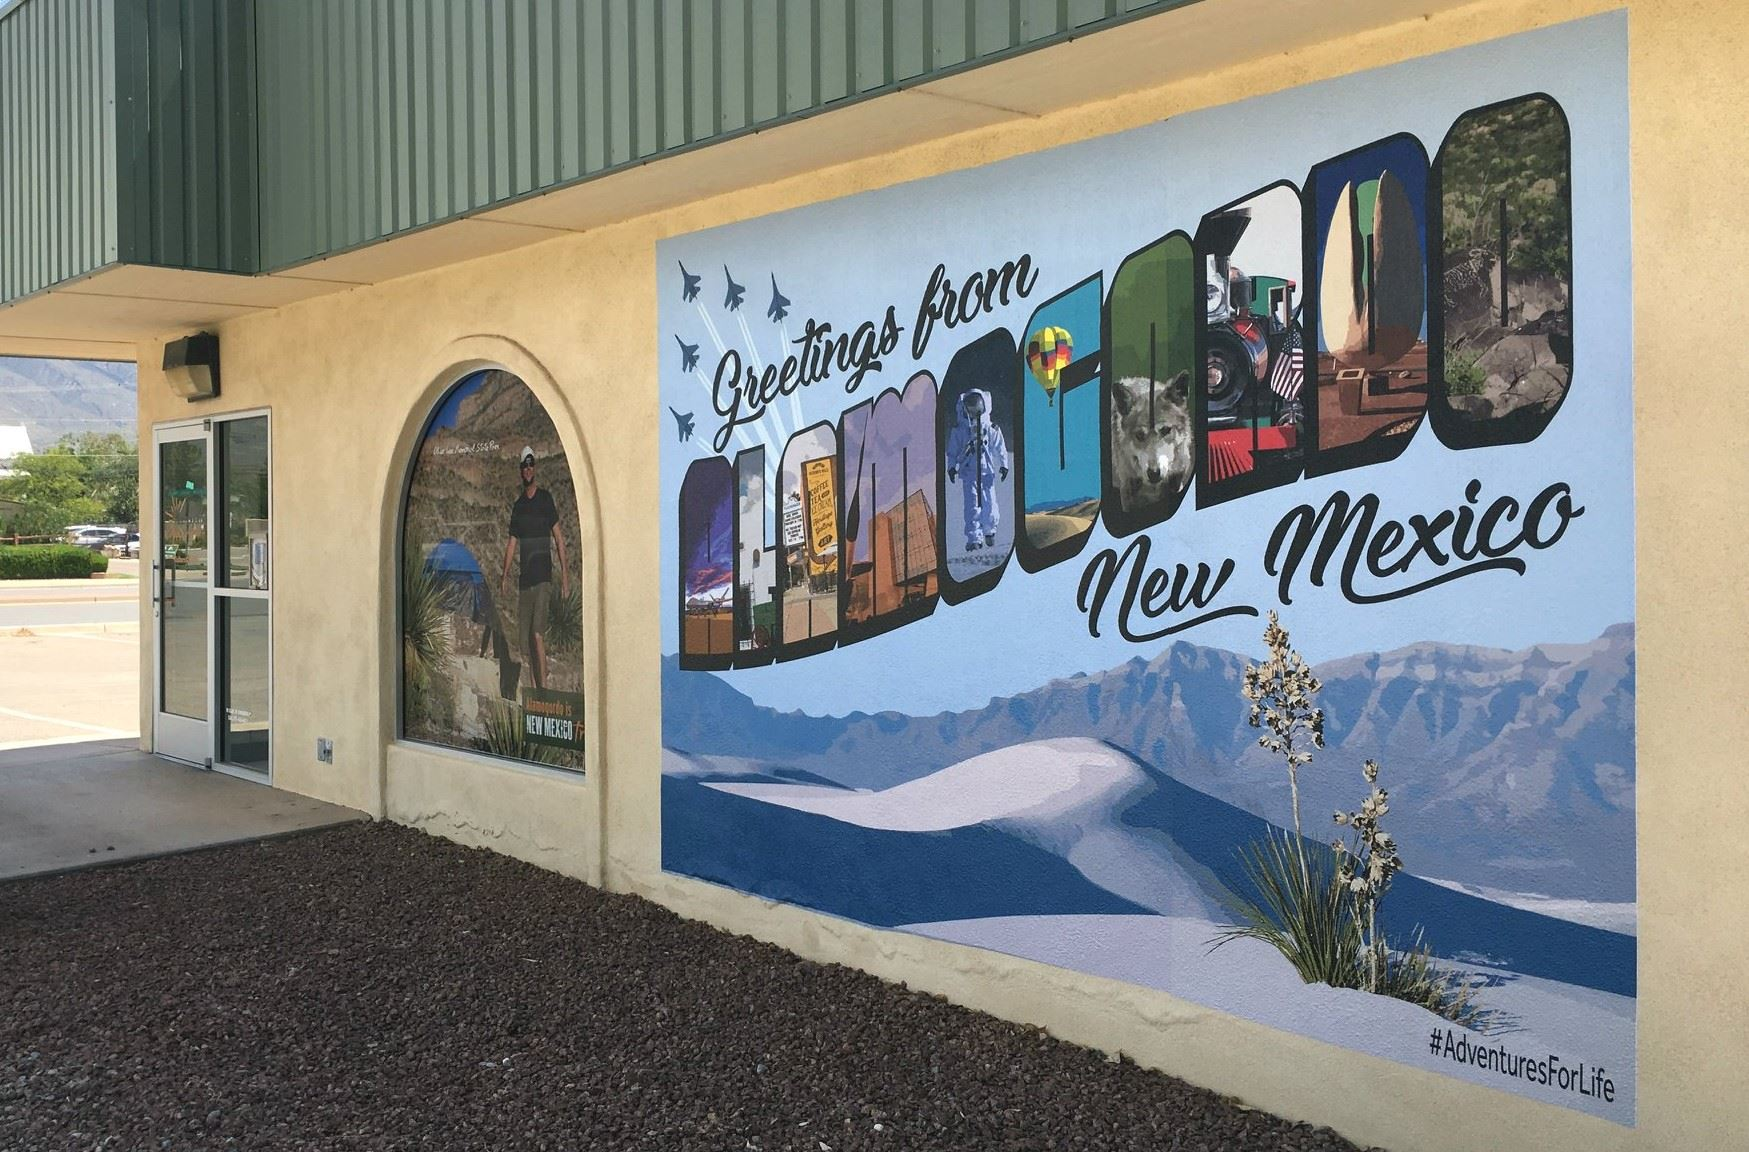 Adventures for life mural Visitor Center